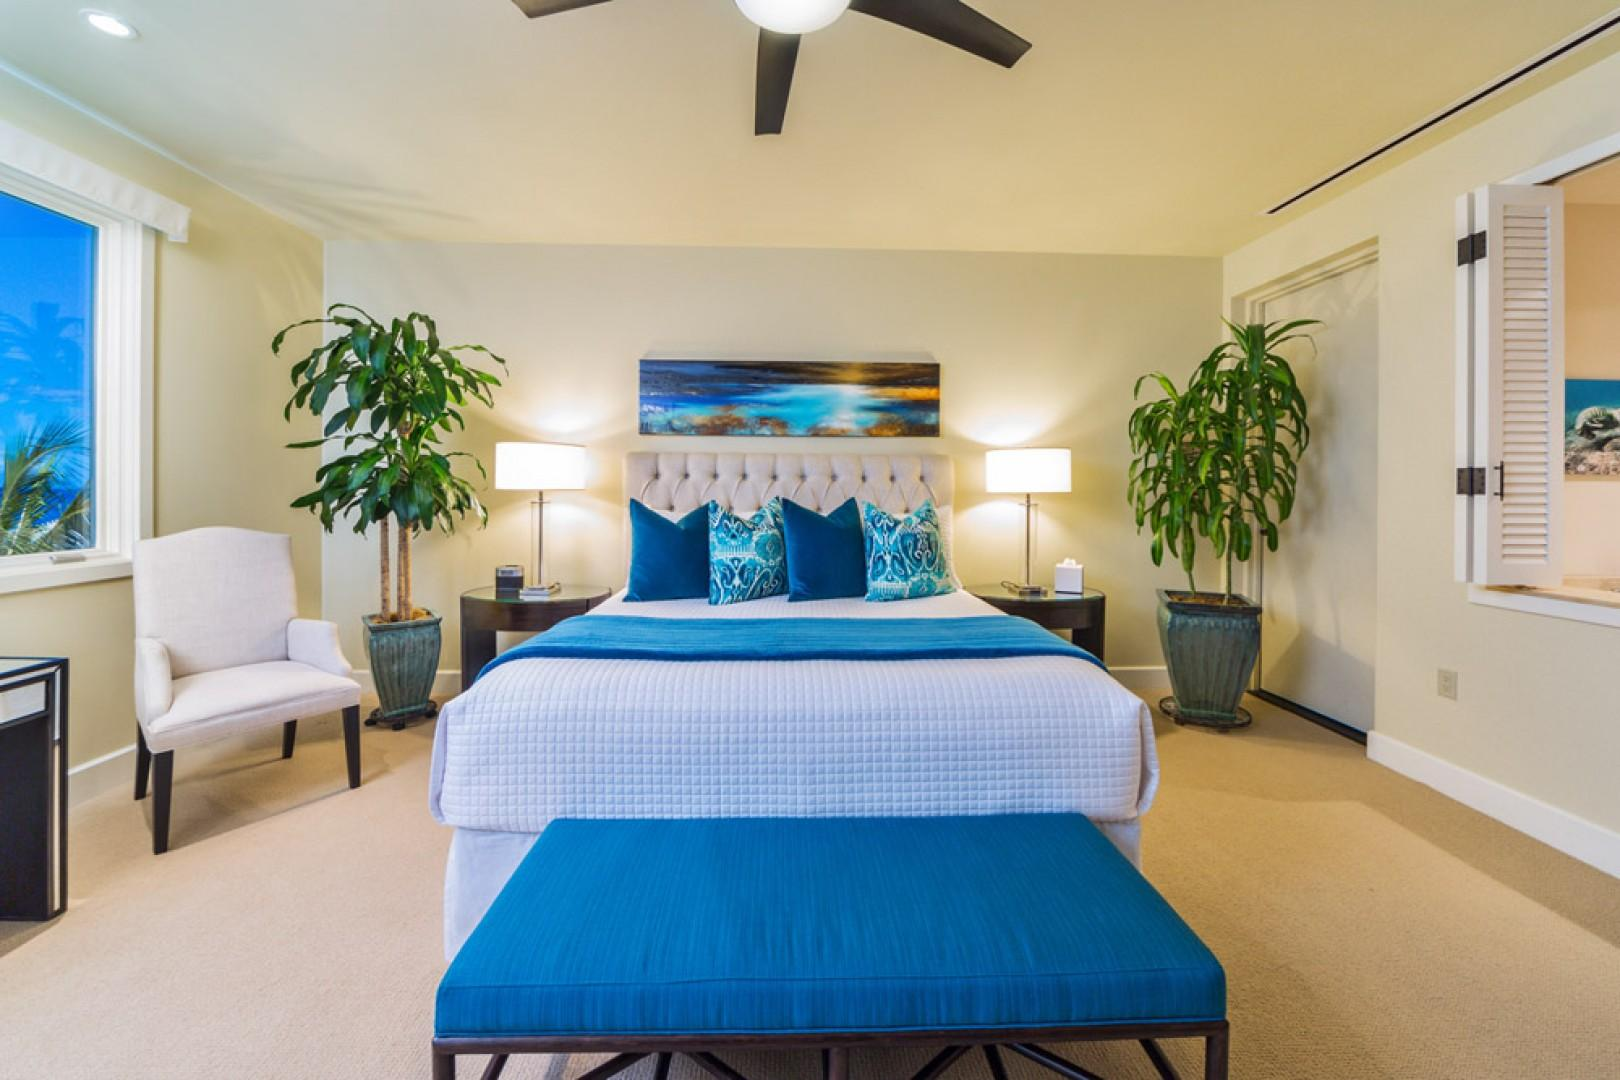 405 Sea Breeze Suite Ocean View Master Bedroom with Direct Ocean Patio Access, King Bed, Desk, Seating, Private Bath, and All New State of Art Entertainment System